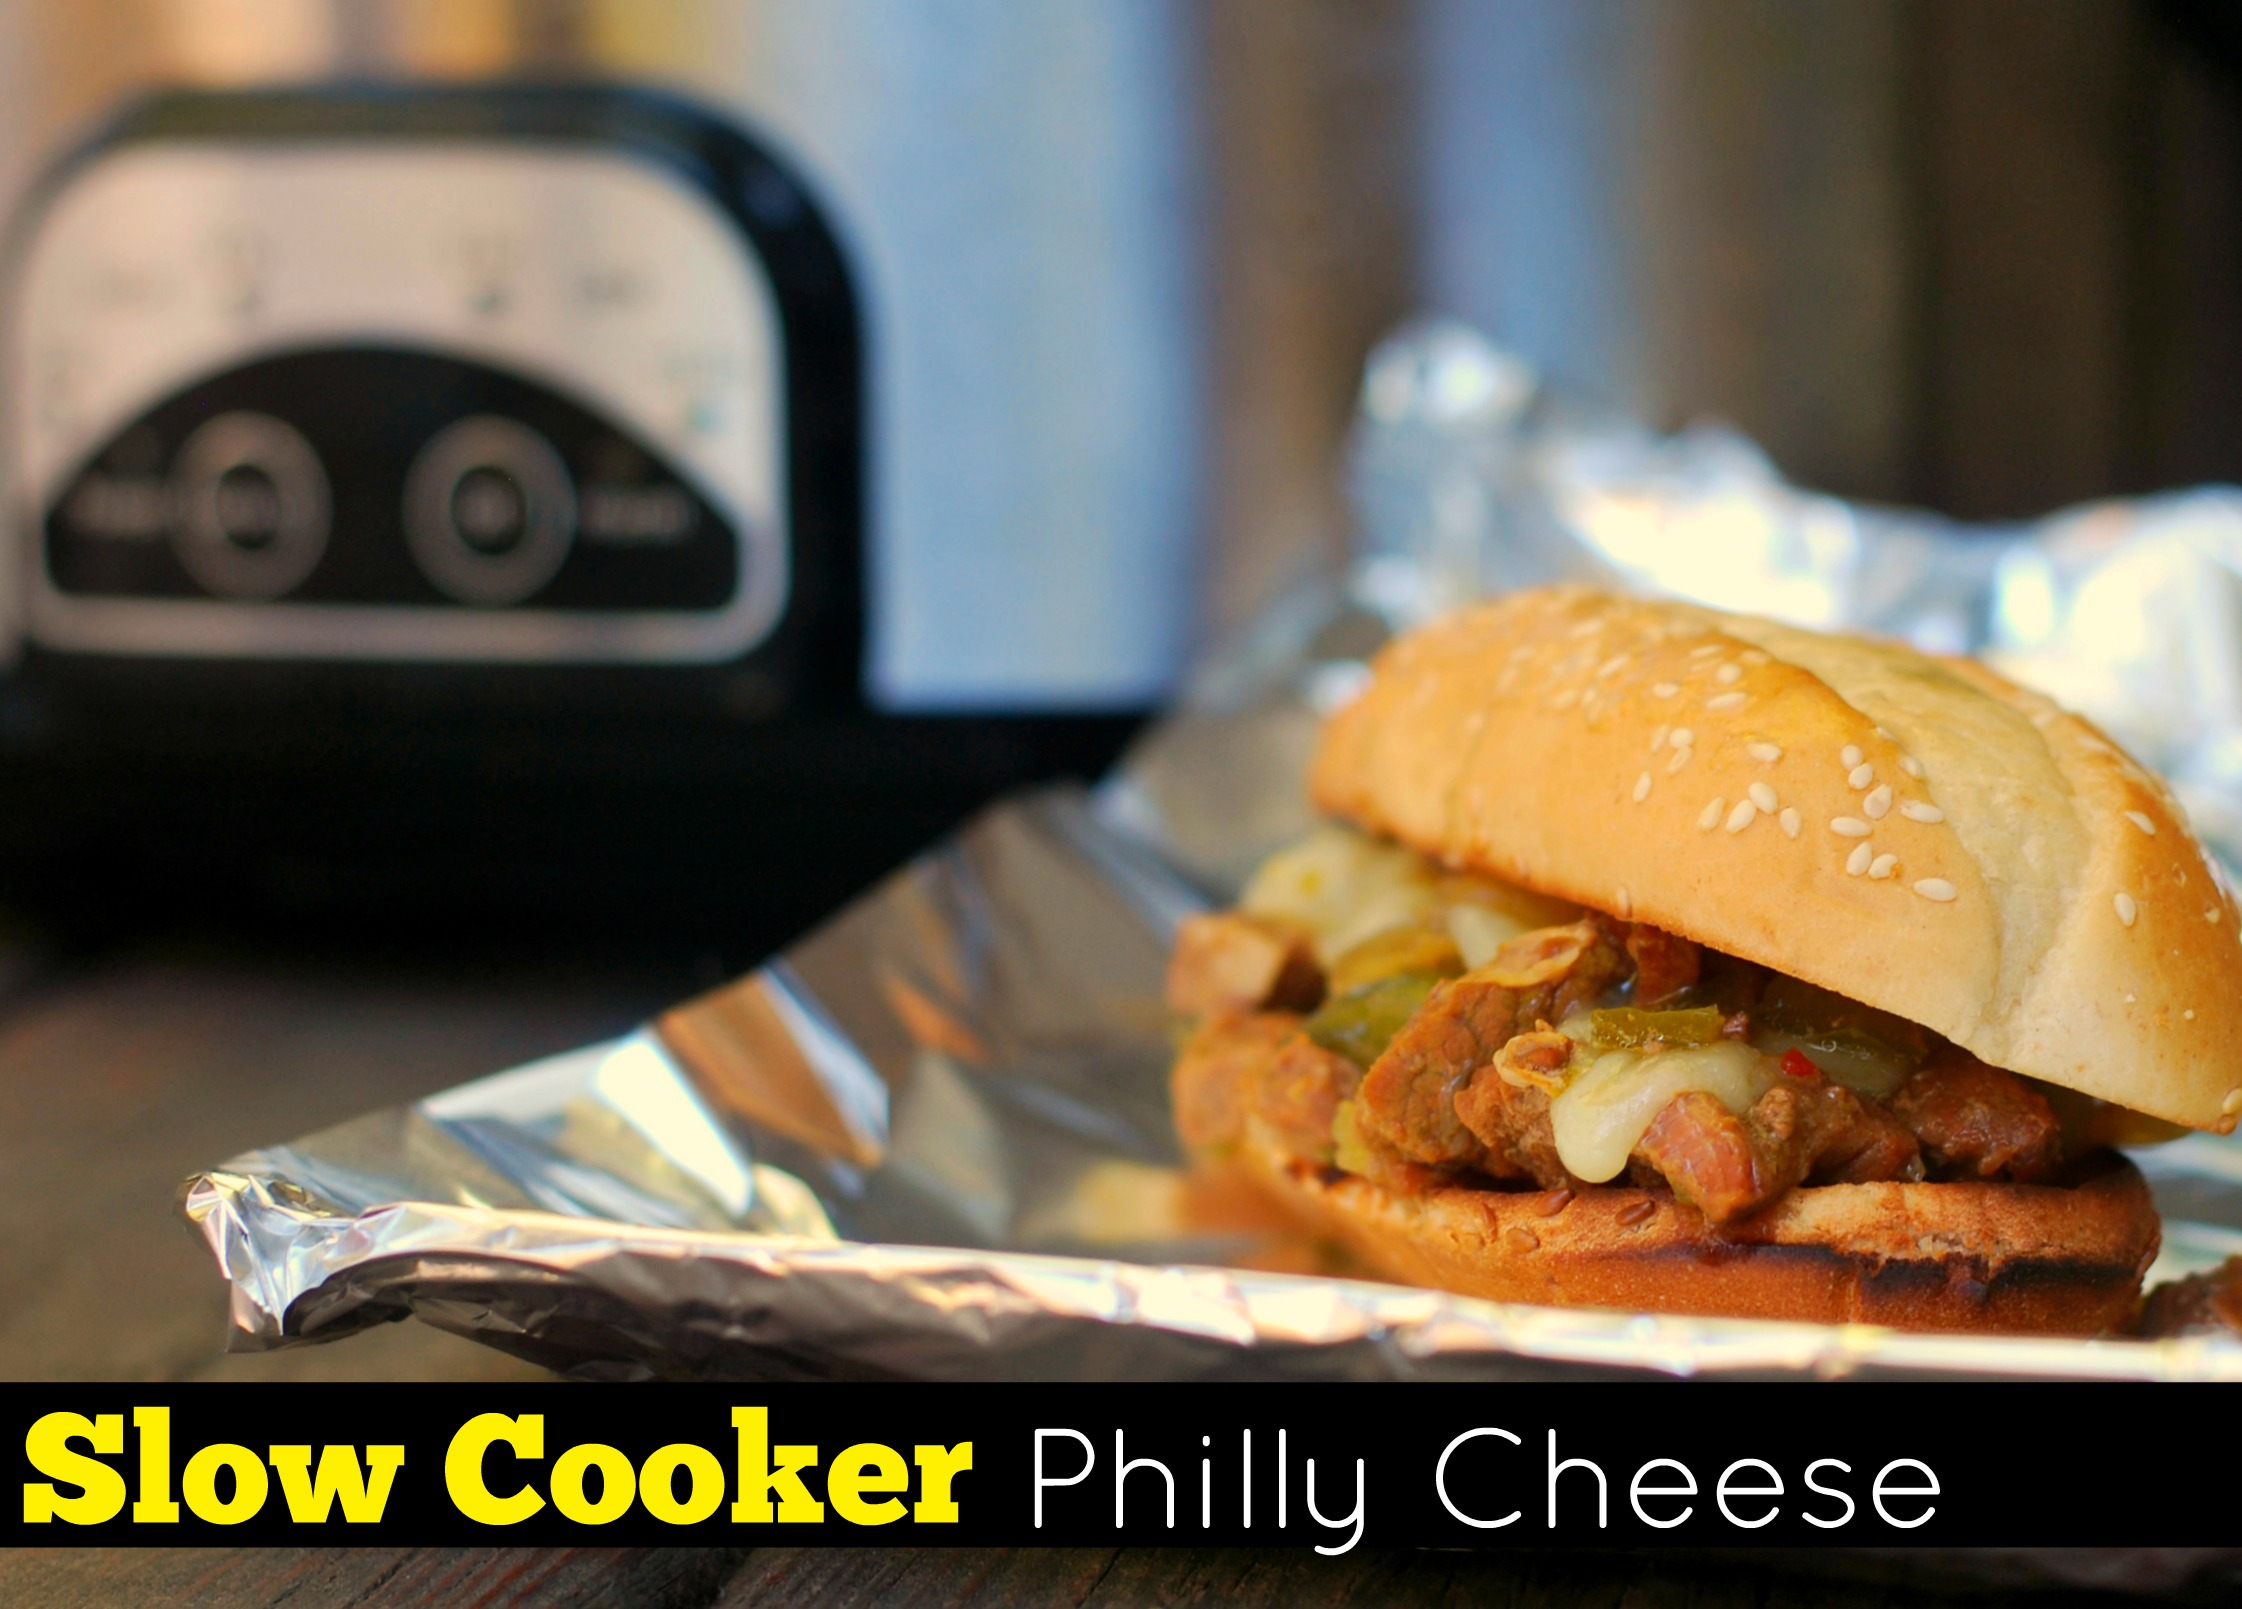 Slow Cooker Philly Cheese - Aunt Bee's Recipes